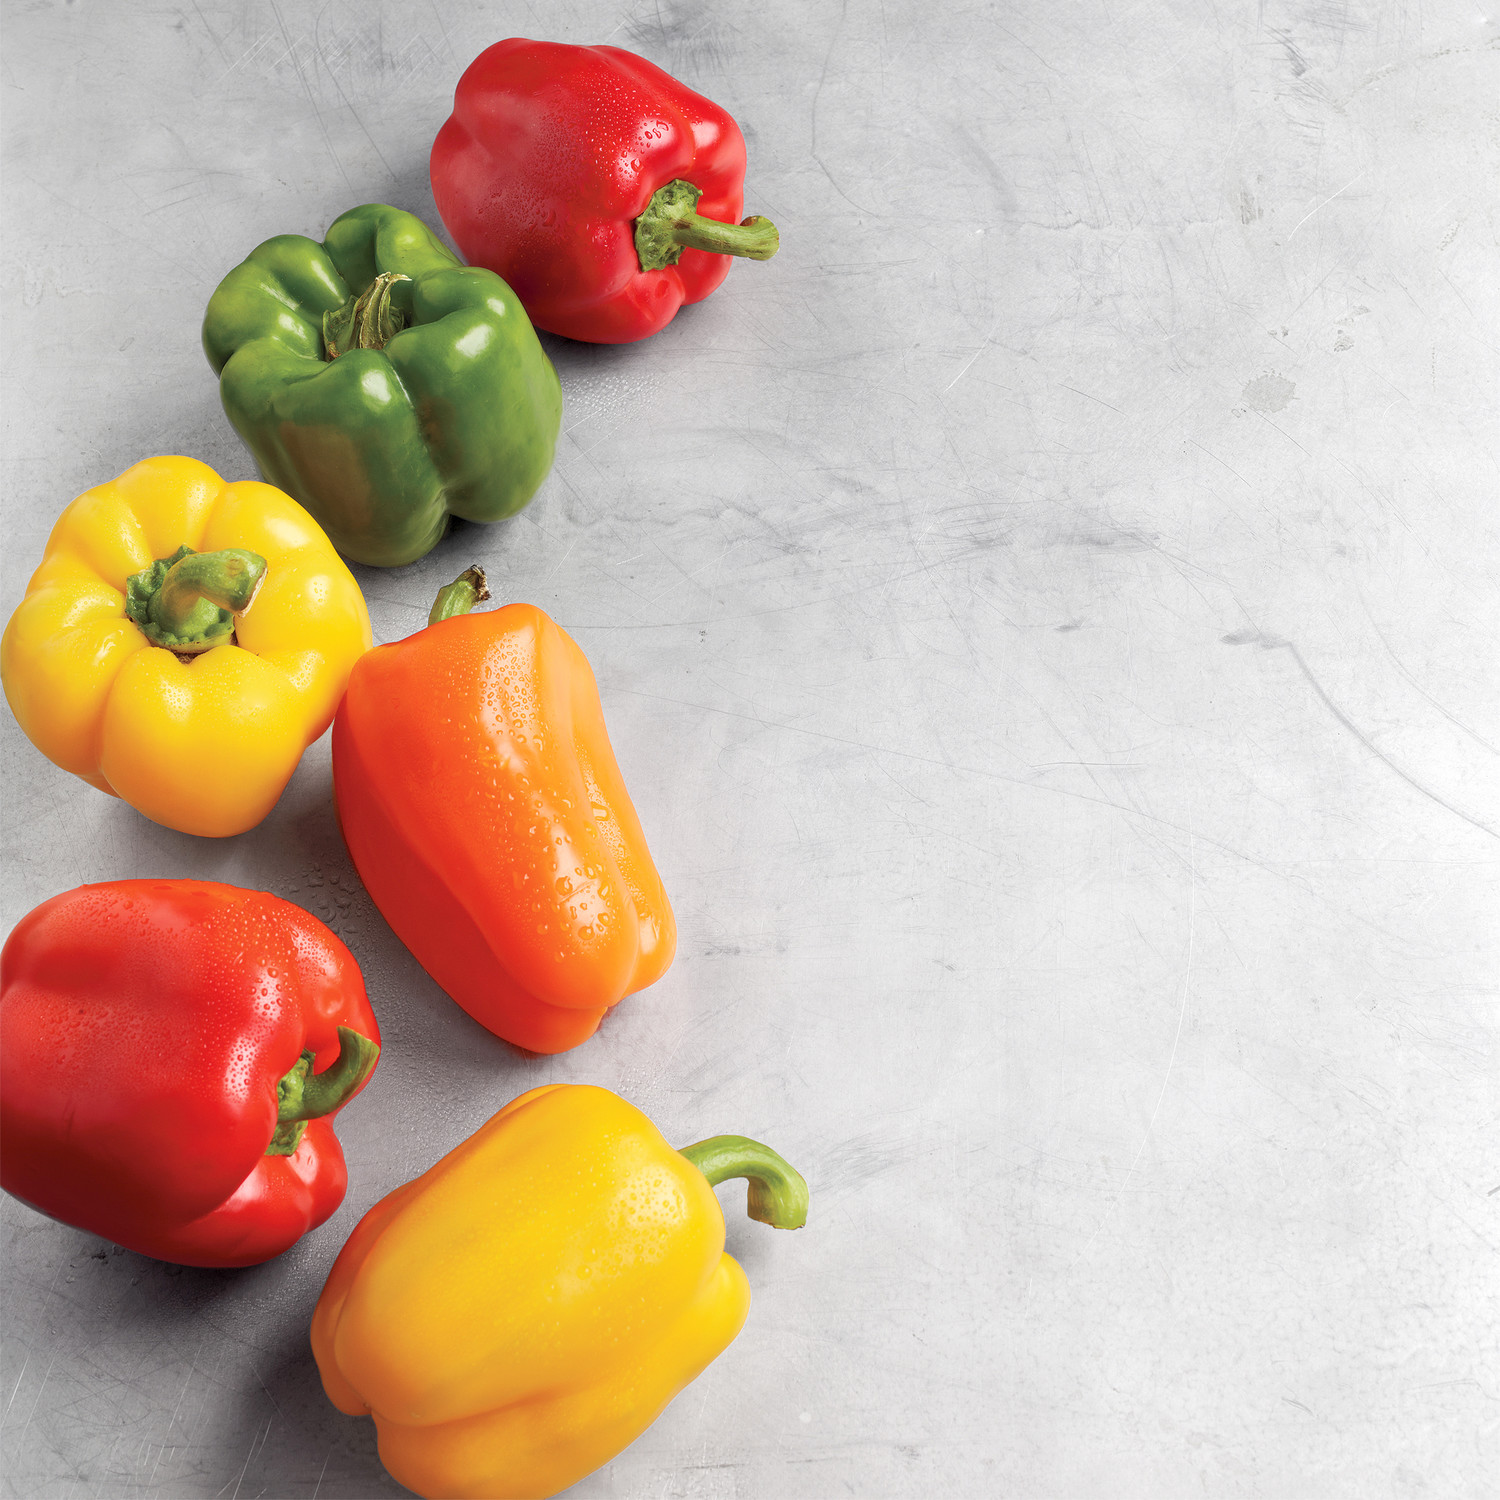 25 Bell Pepper Recipes That Make the Most of This Colorful